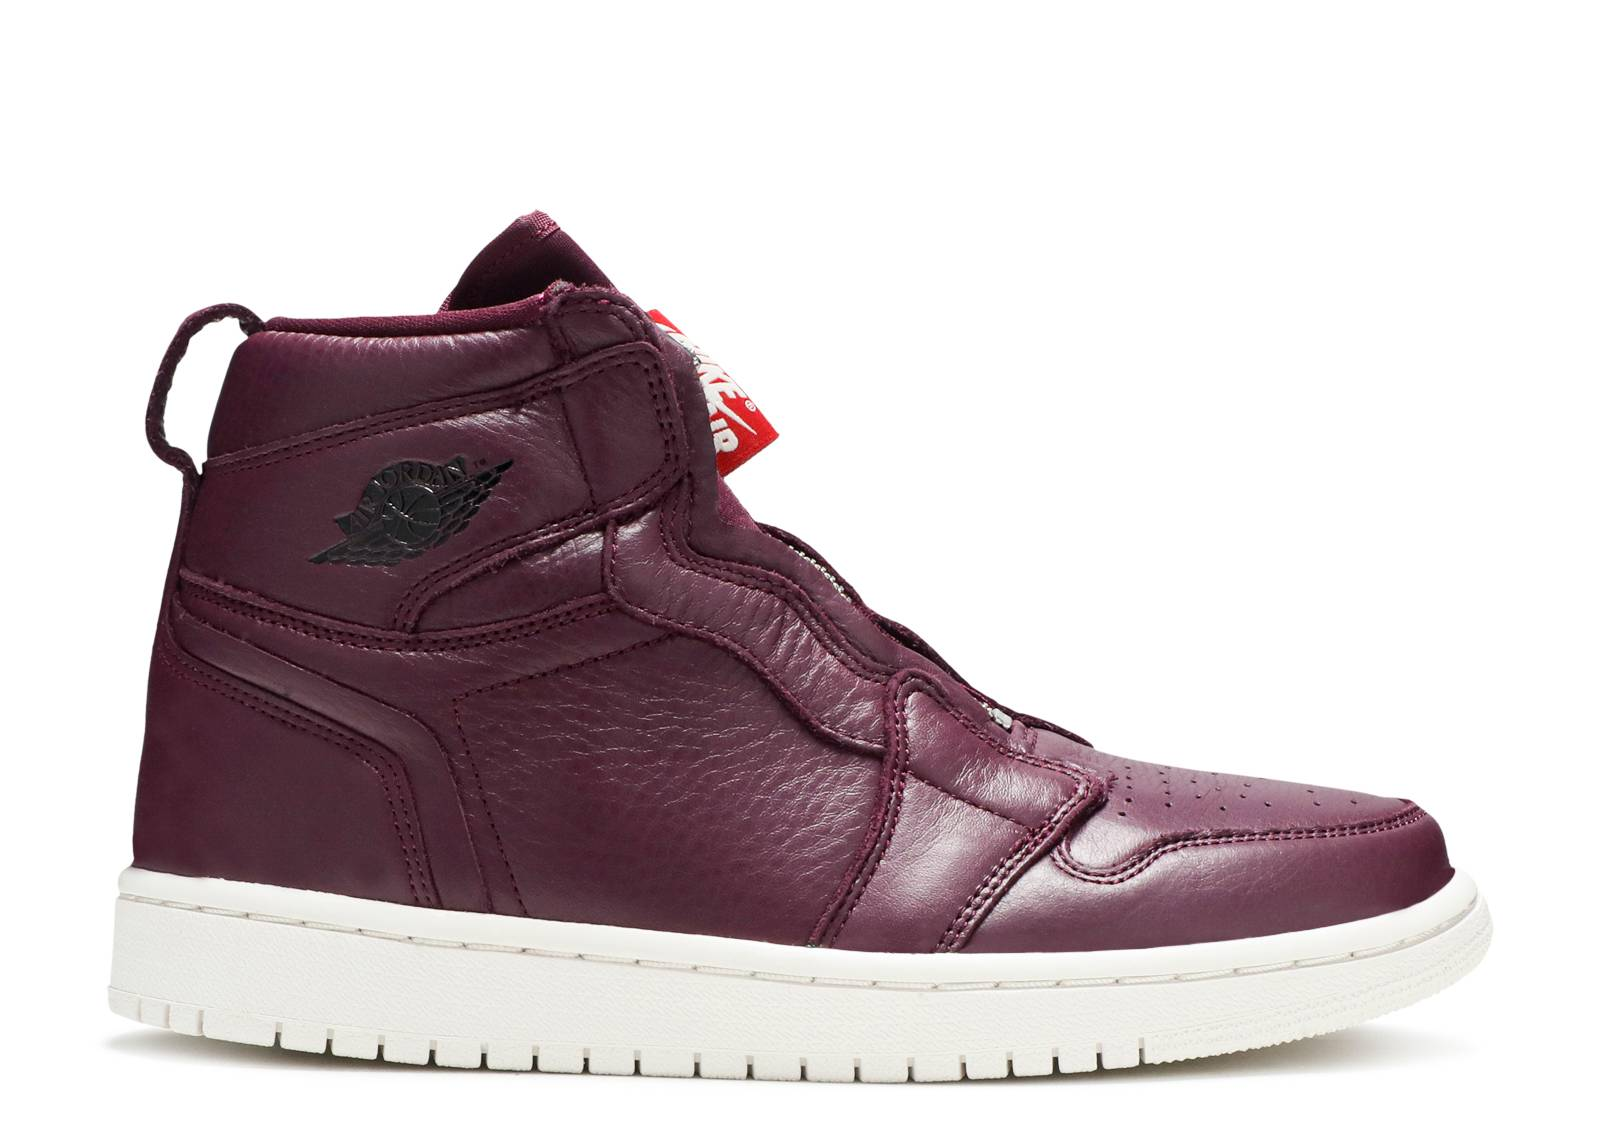 wmns air jordan 1 hi zip prem